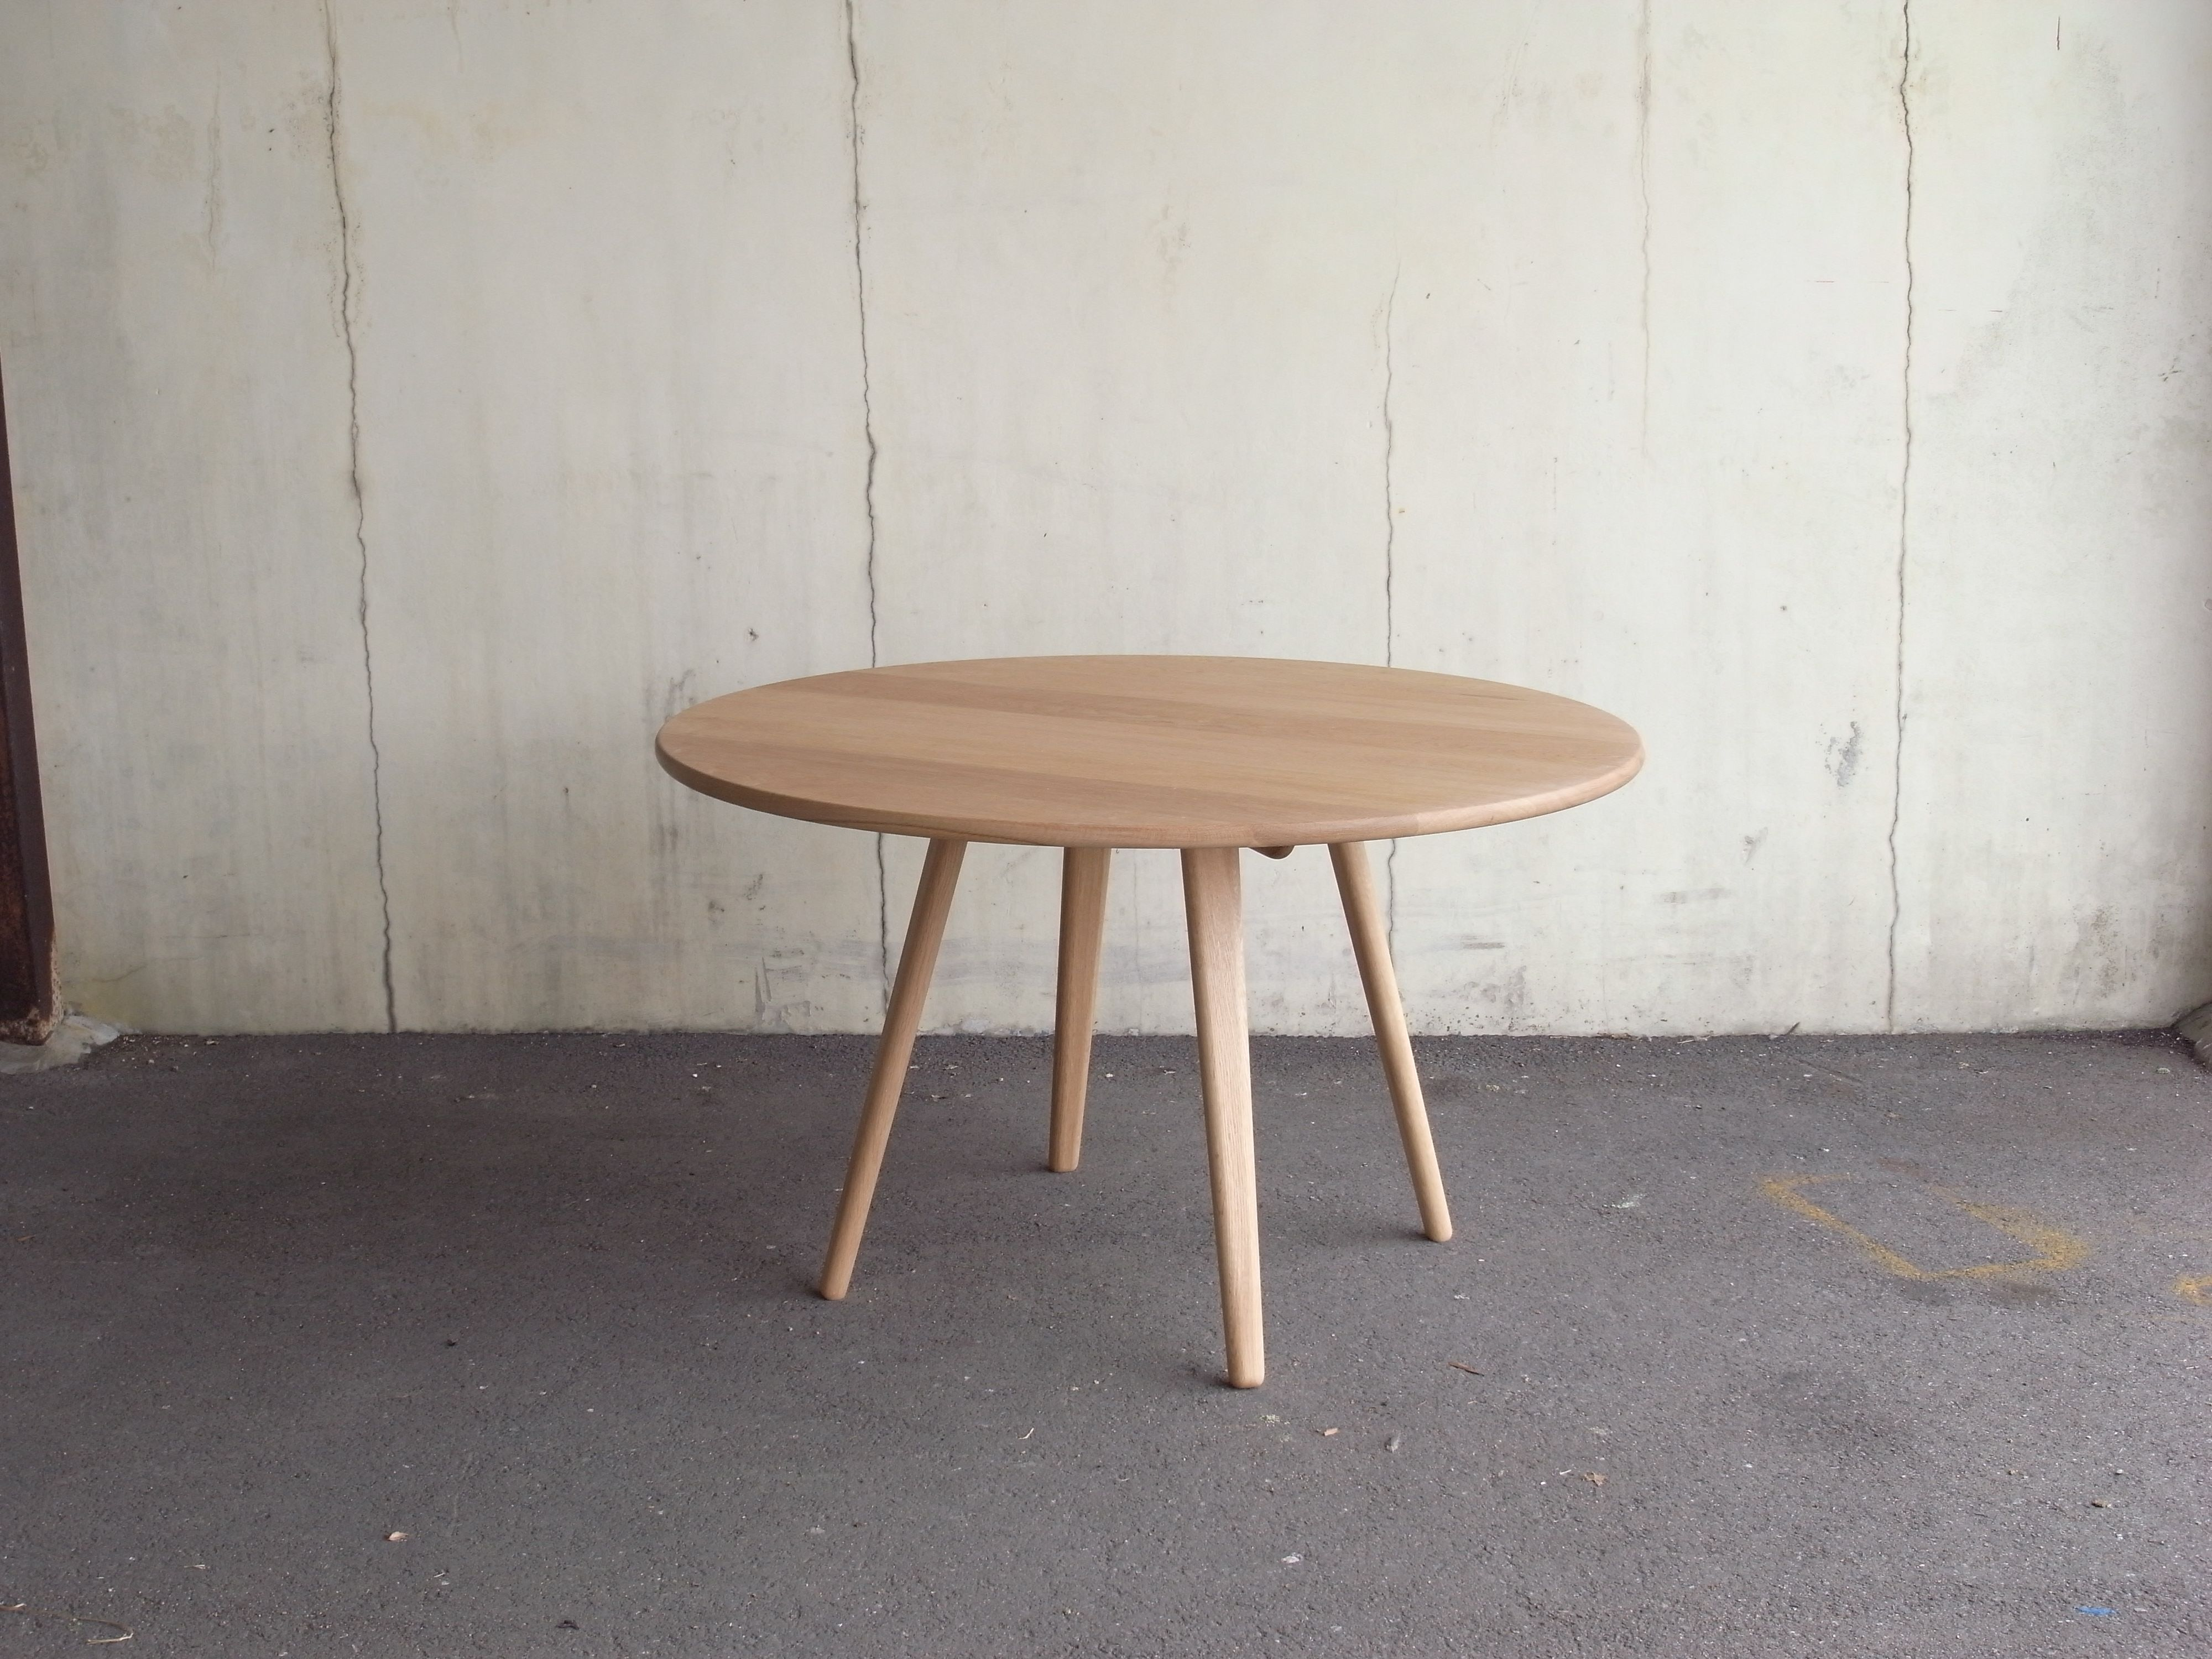 "diningtable ""Mushroom"" Φ : 1200mm h : 700mm material : oak finish : wax"